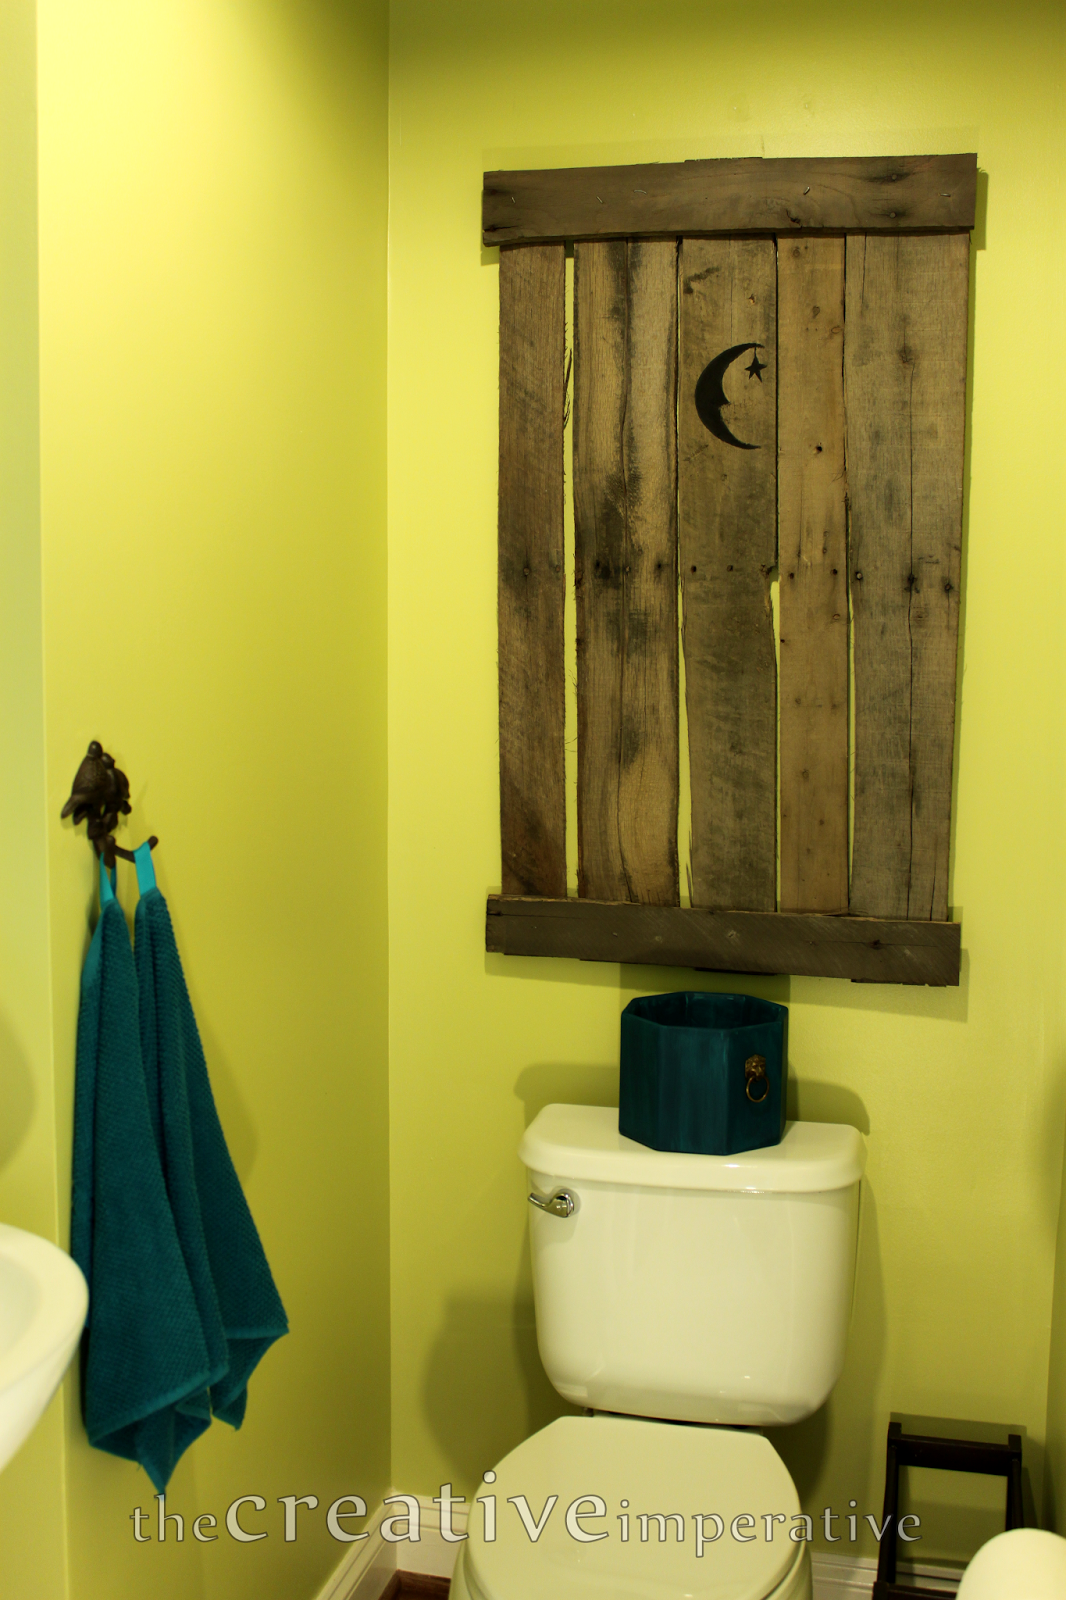 The Creative Imperative: A Bathroom Update: The Chartreuse Outhouse